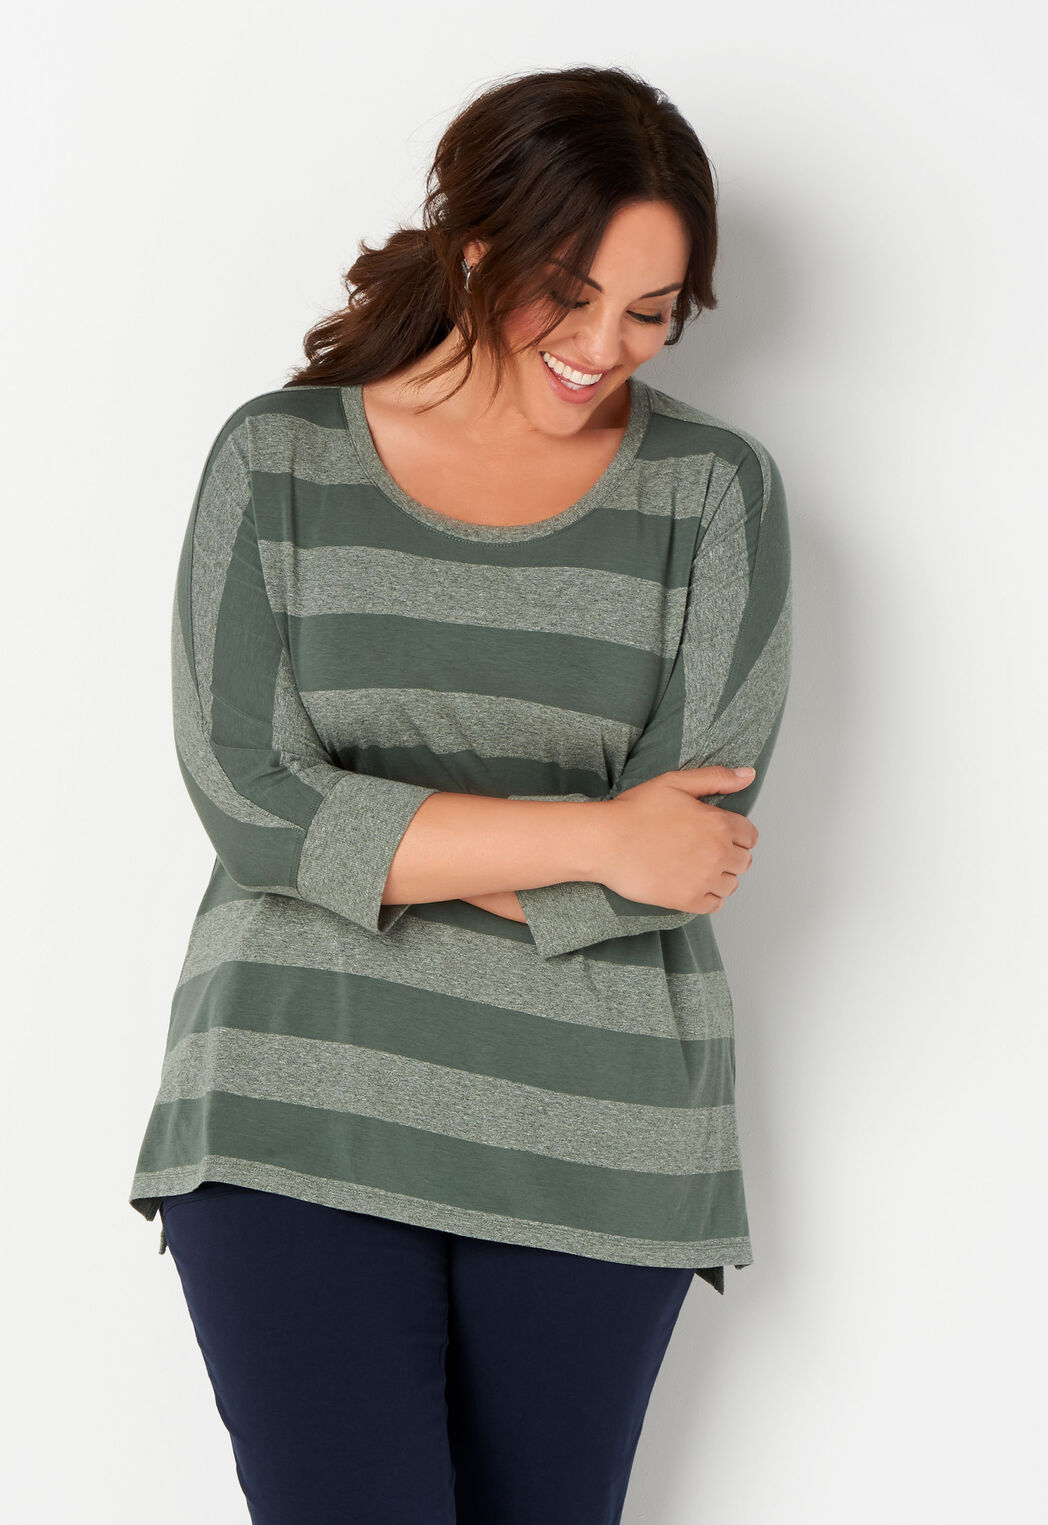 cb683b8b9cc Relaxed Restyled Batwing Stripe Plus Size Top - CBK Web Store